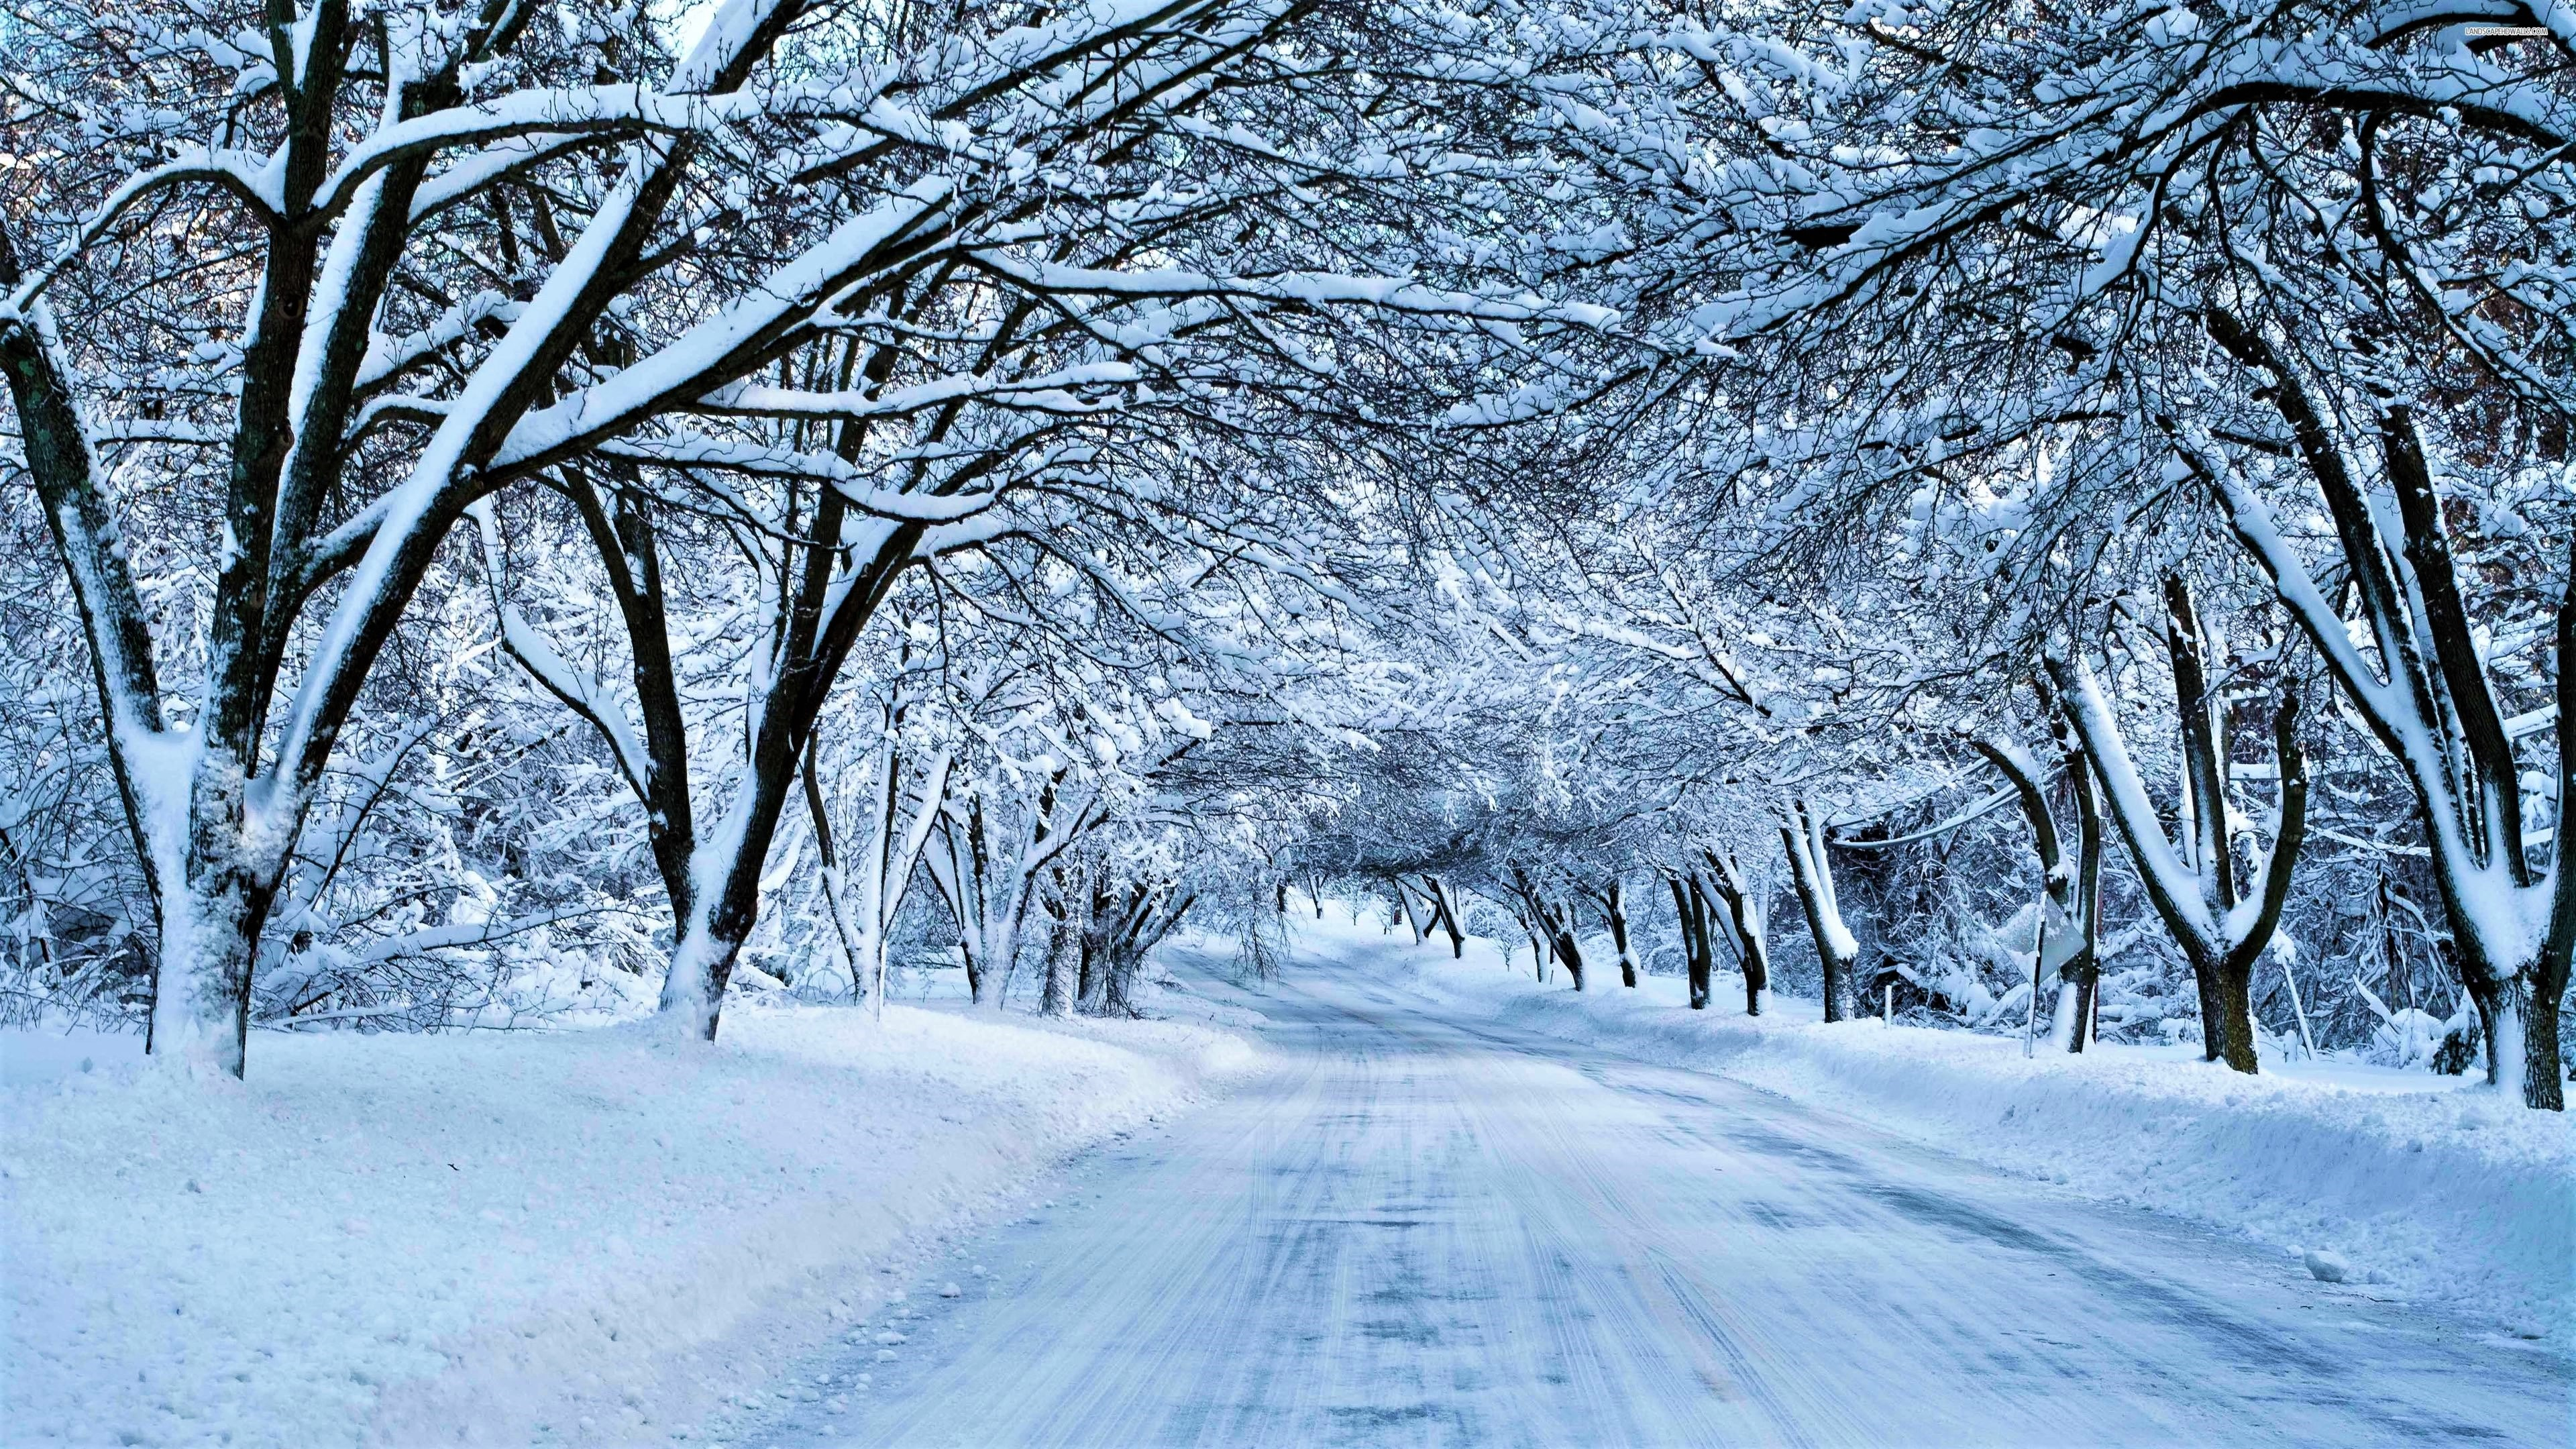 Snowy tree lane wallpaper